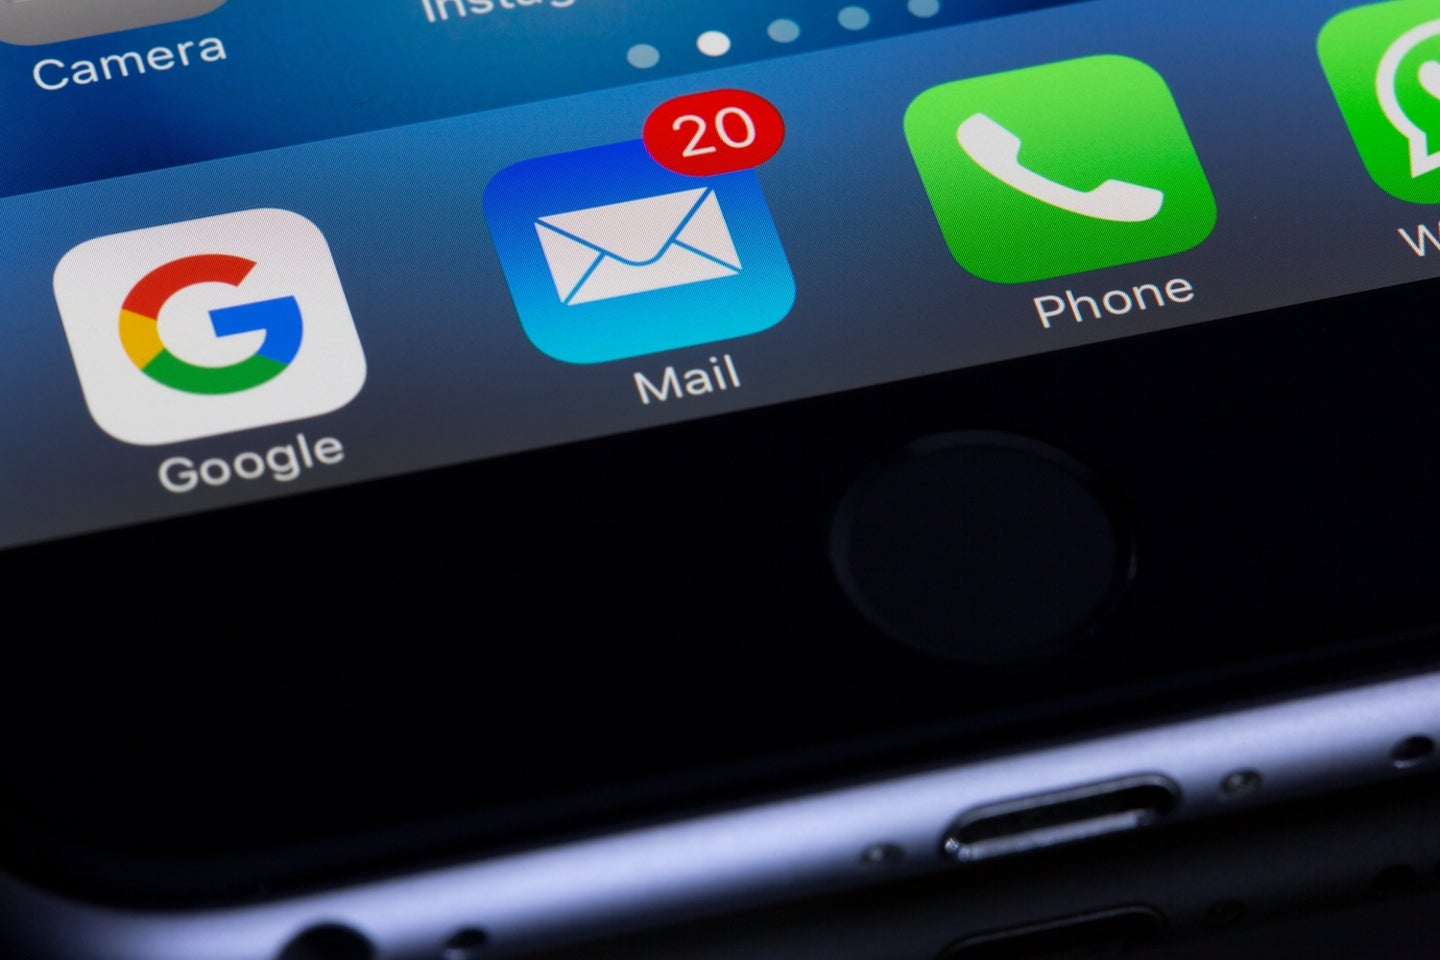 a phone with the Apple Mail app visible, with some notifications